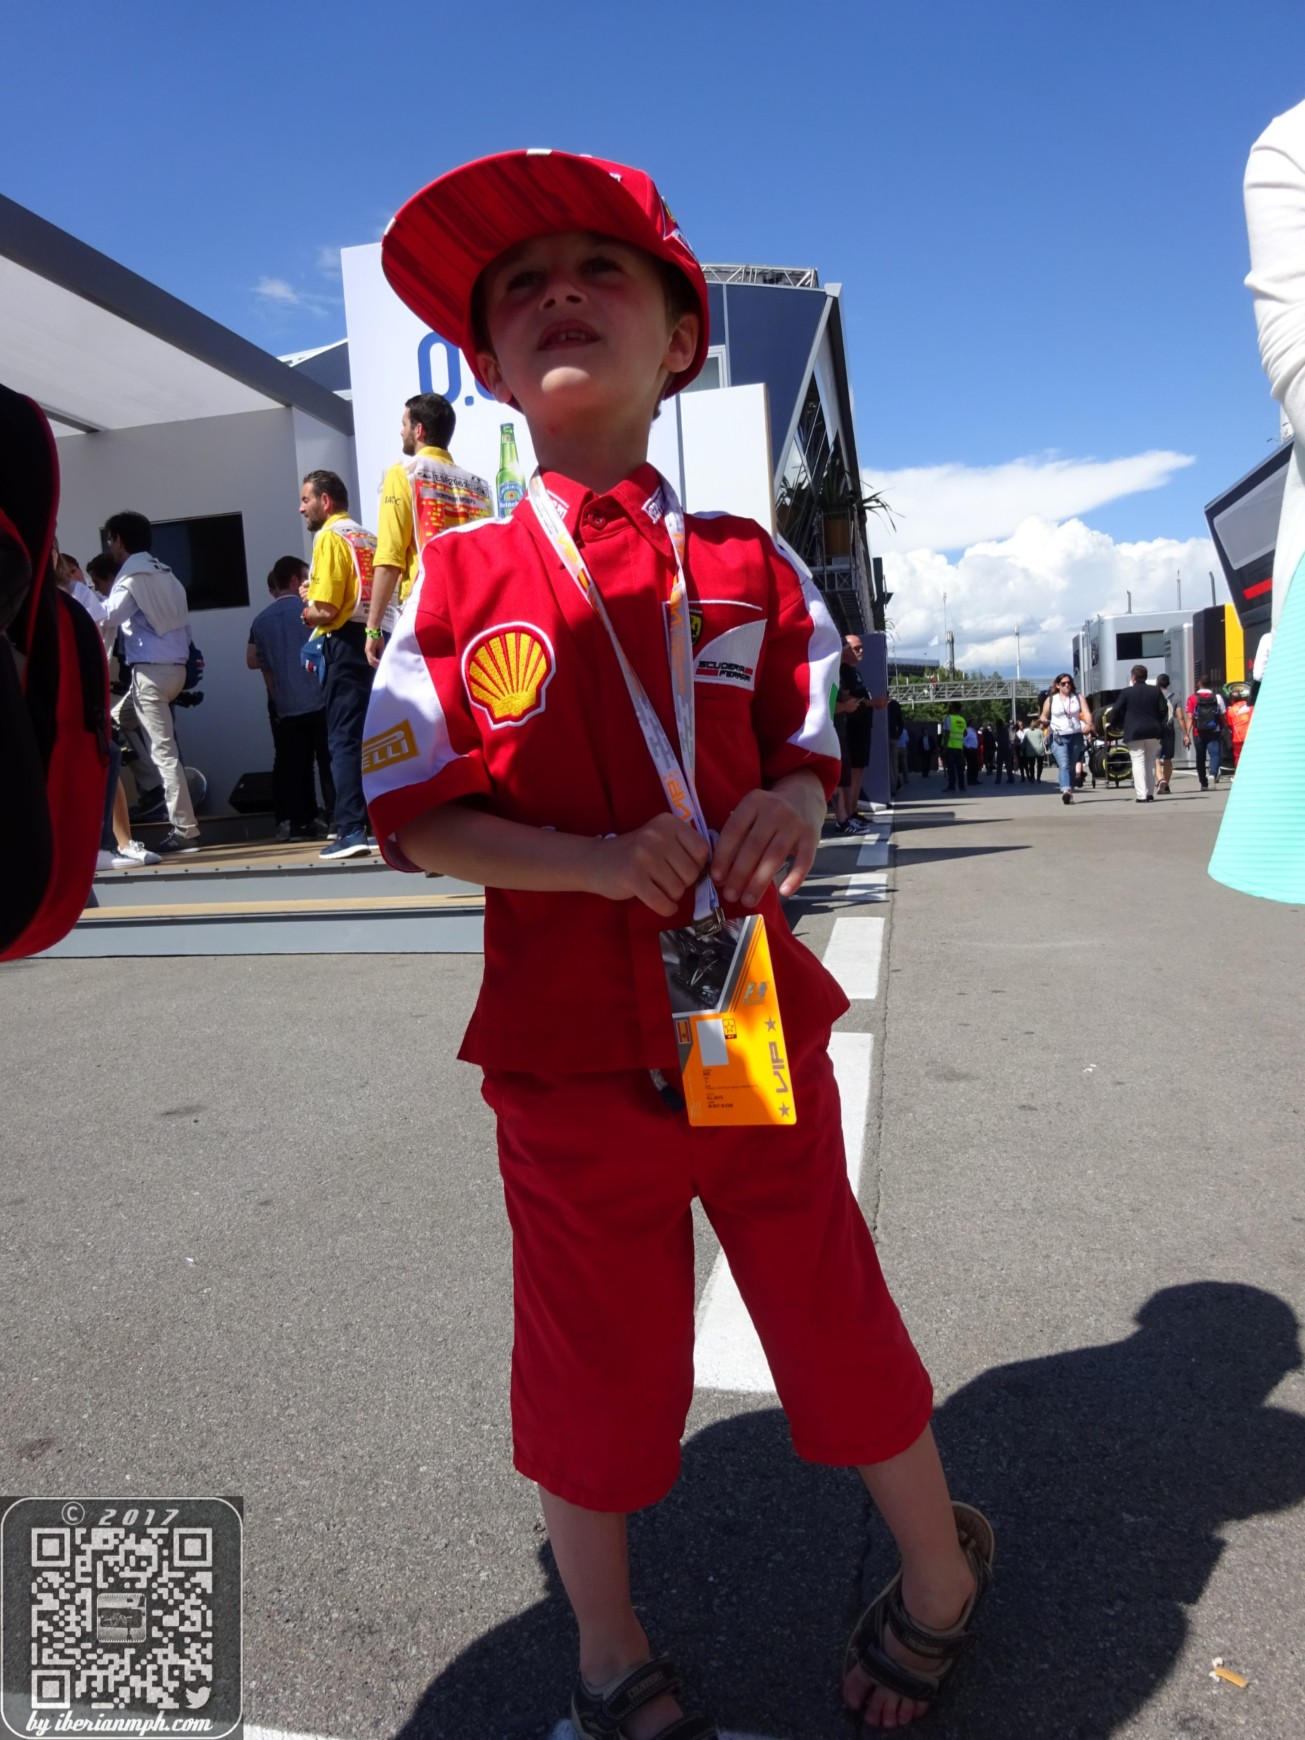 Kimi's Biggest Fan is Happy (Now)